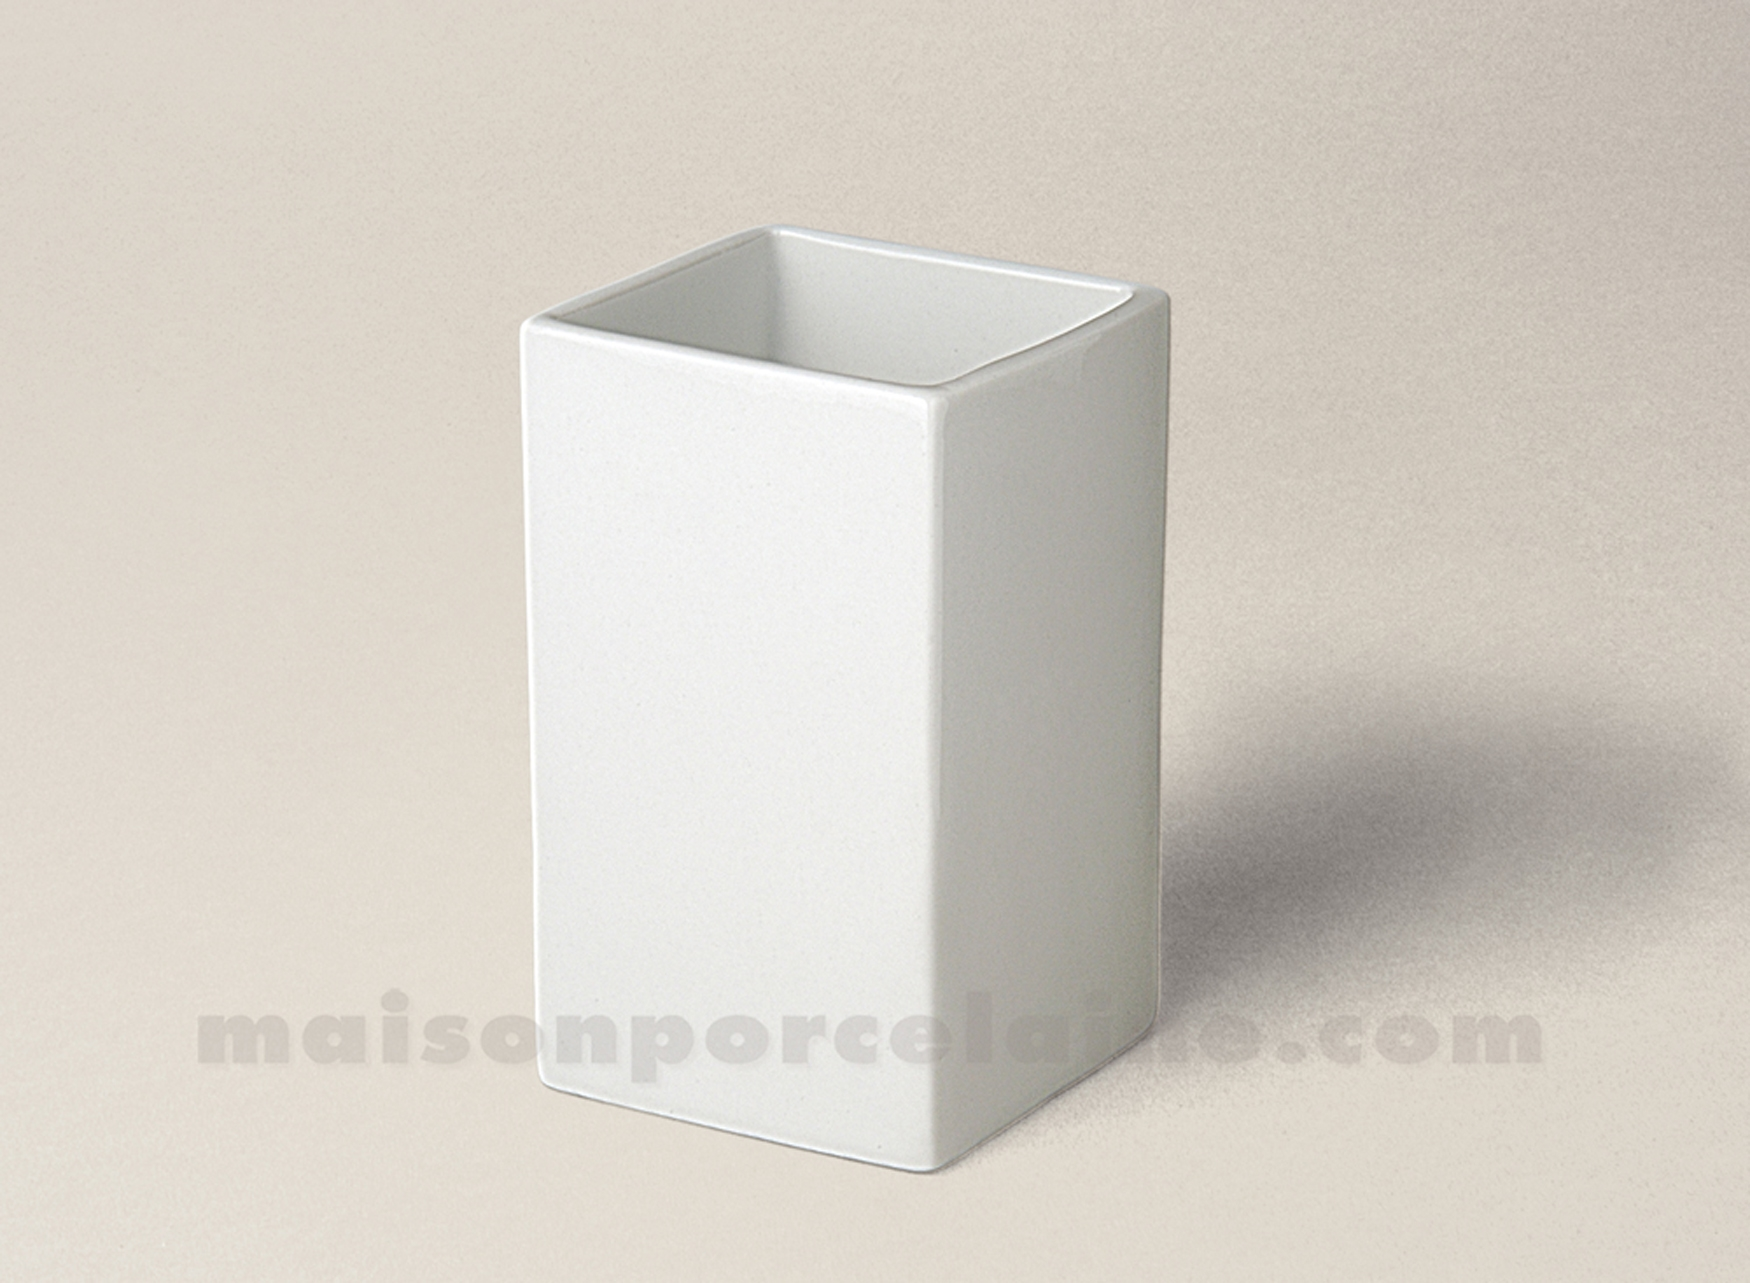 verre a dents porcelaine blanche carre ming 10x6 maison de la porcelaine. Black Bedroom Furniture Sets. Home Design Ideas